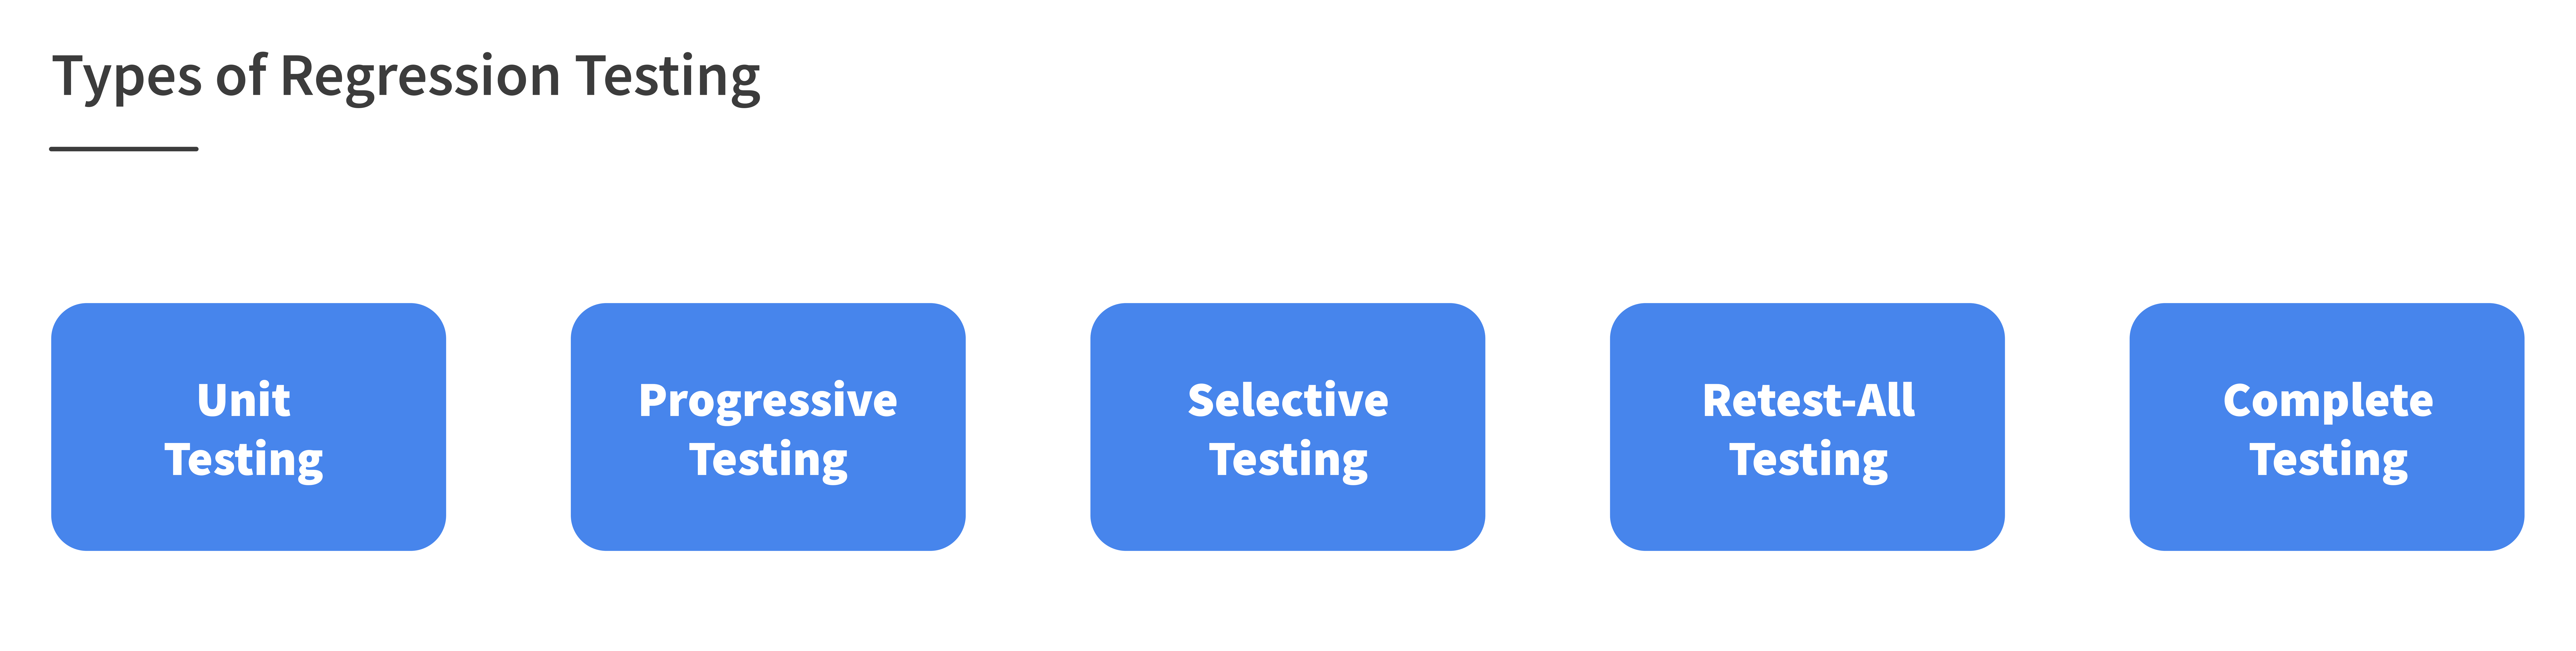 Types-of-Regression-Testing.png